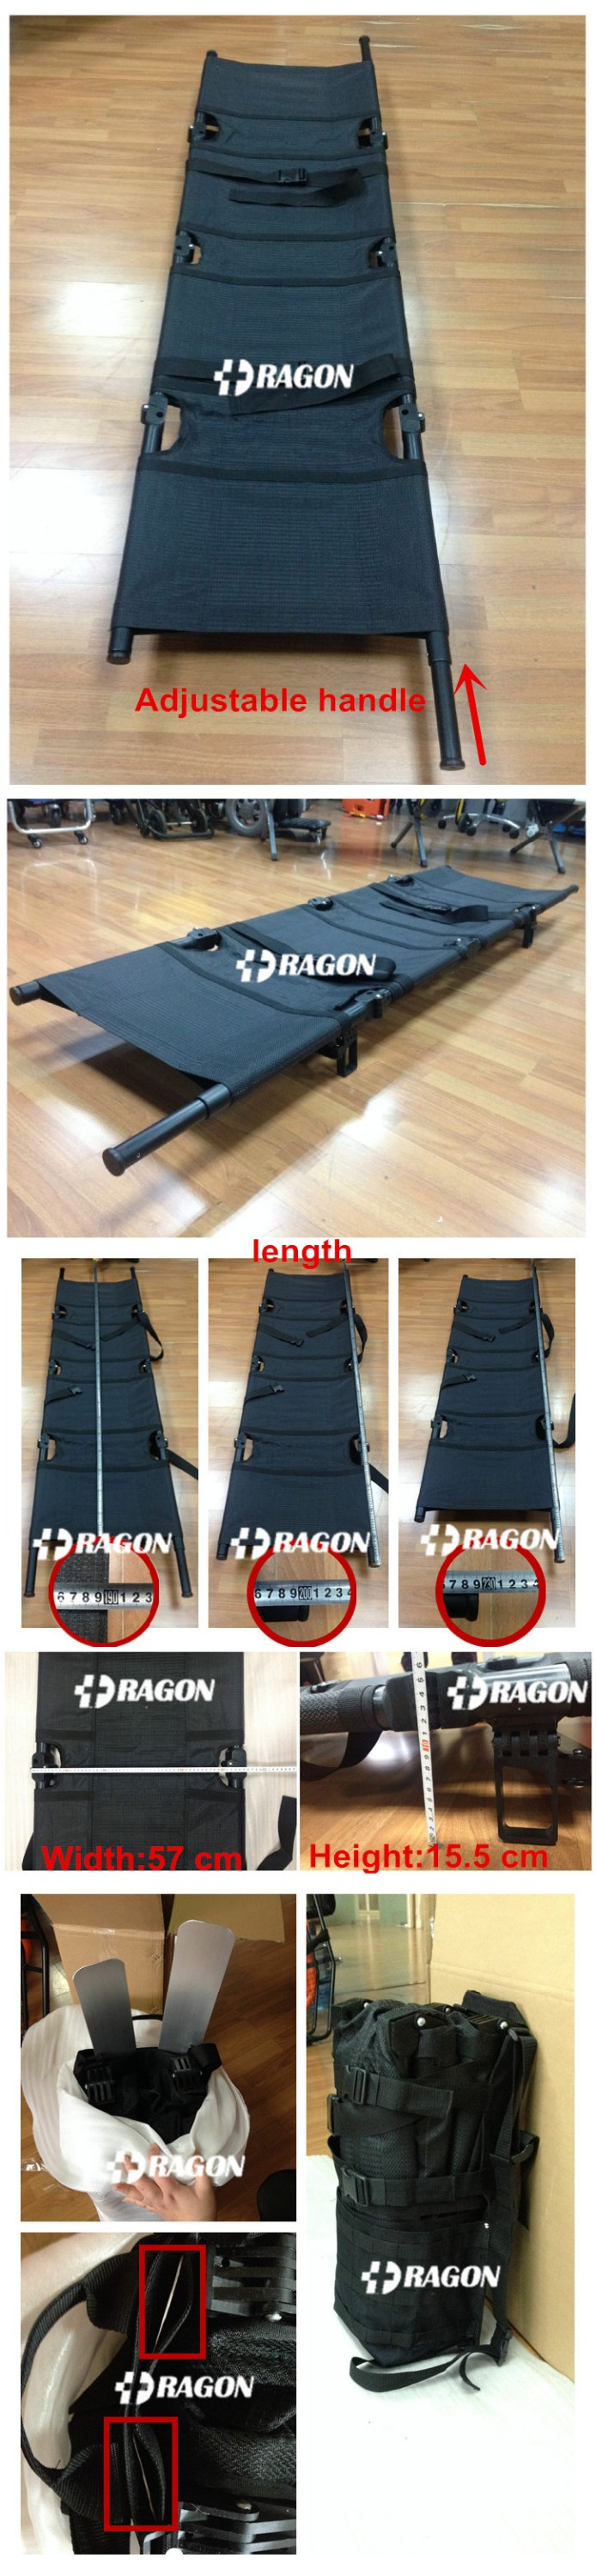 Military use medical device 4 folded aluminum army stretcher